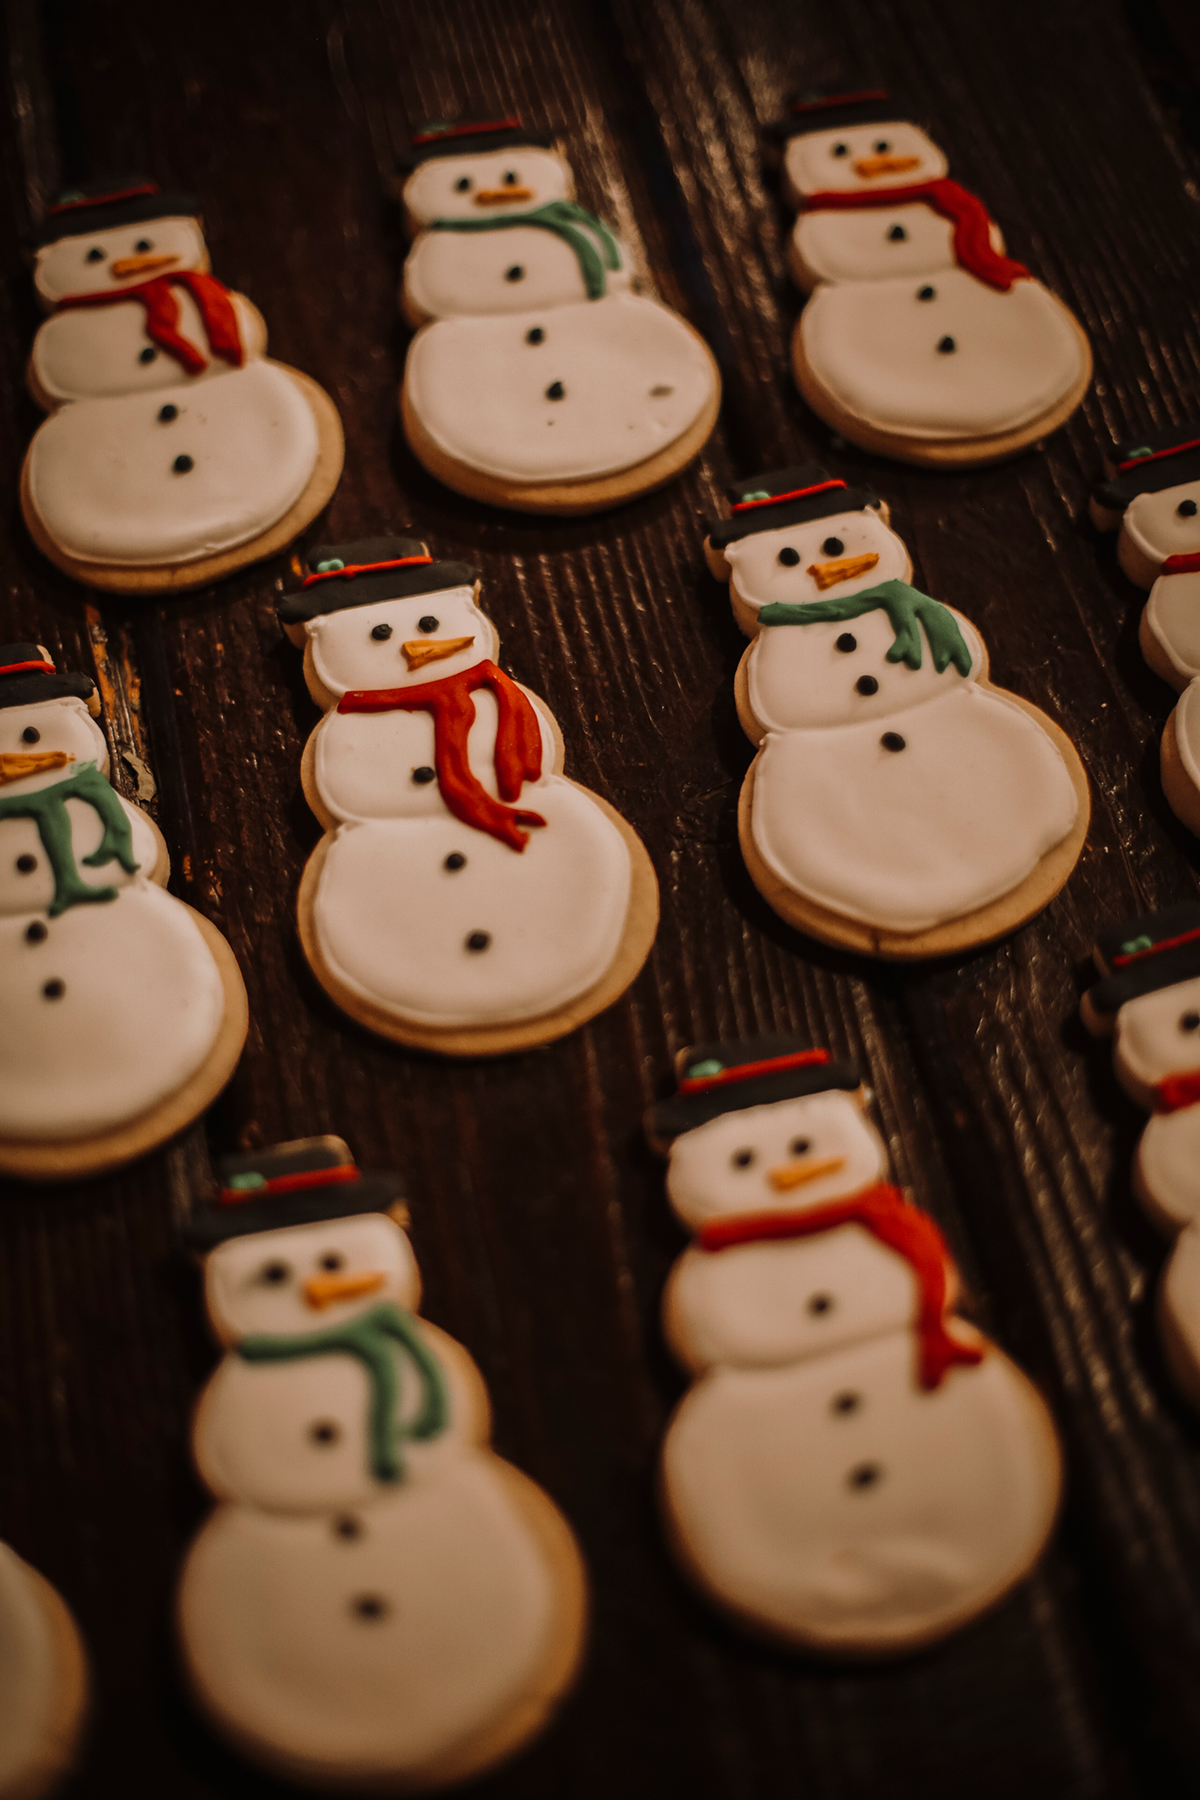 Snowman cookies